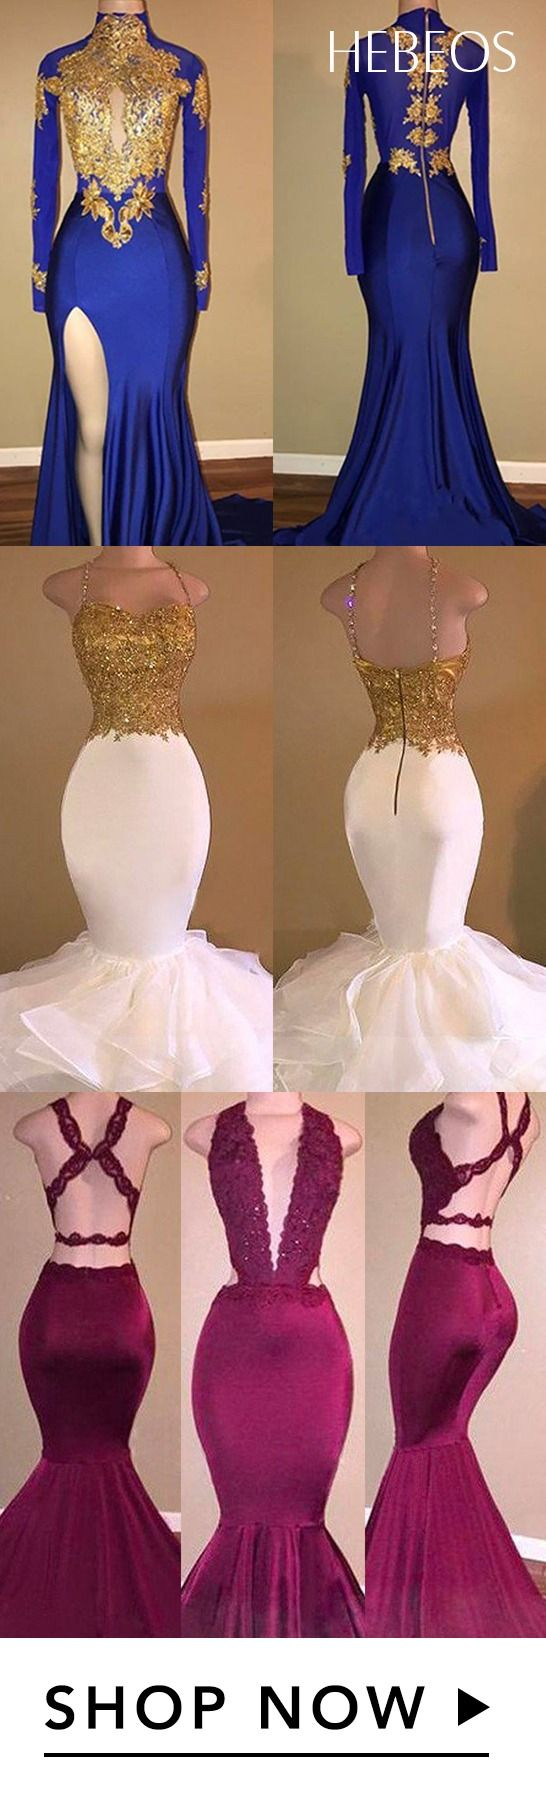 Cheap Prom Dresses On Sale - Hebeos  Prom dresses, Dresses, Prom